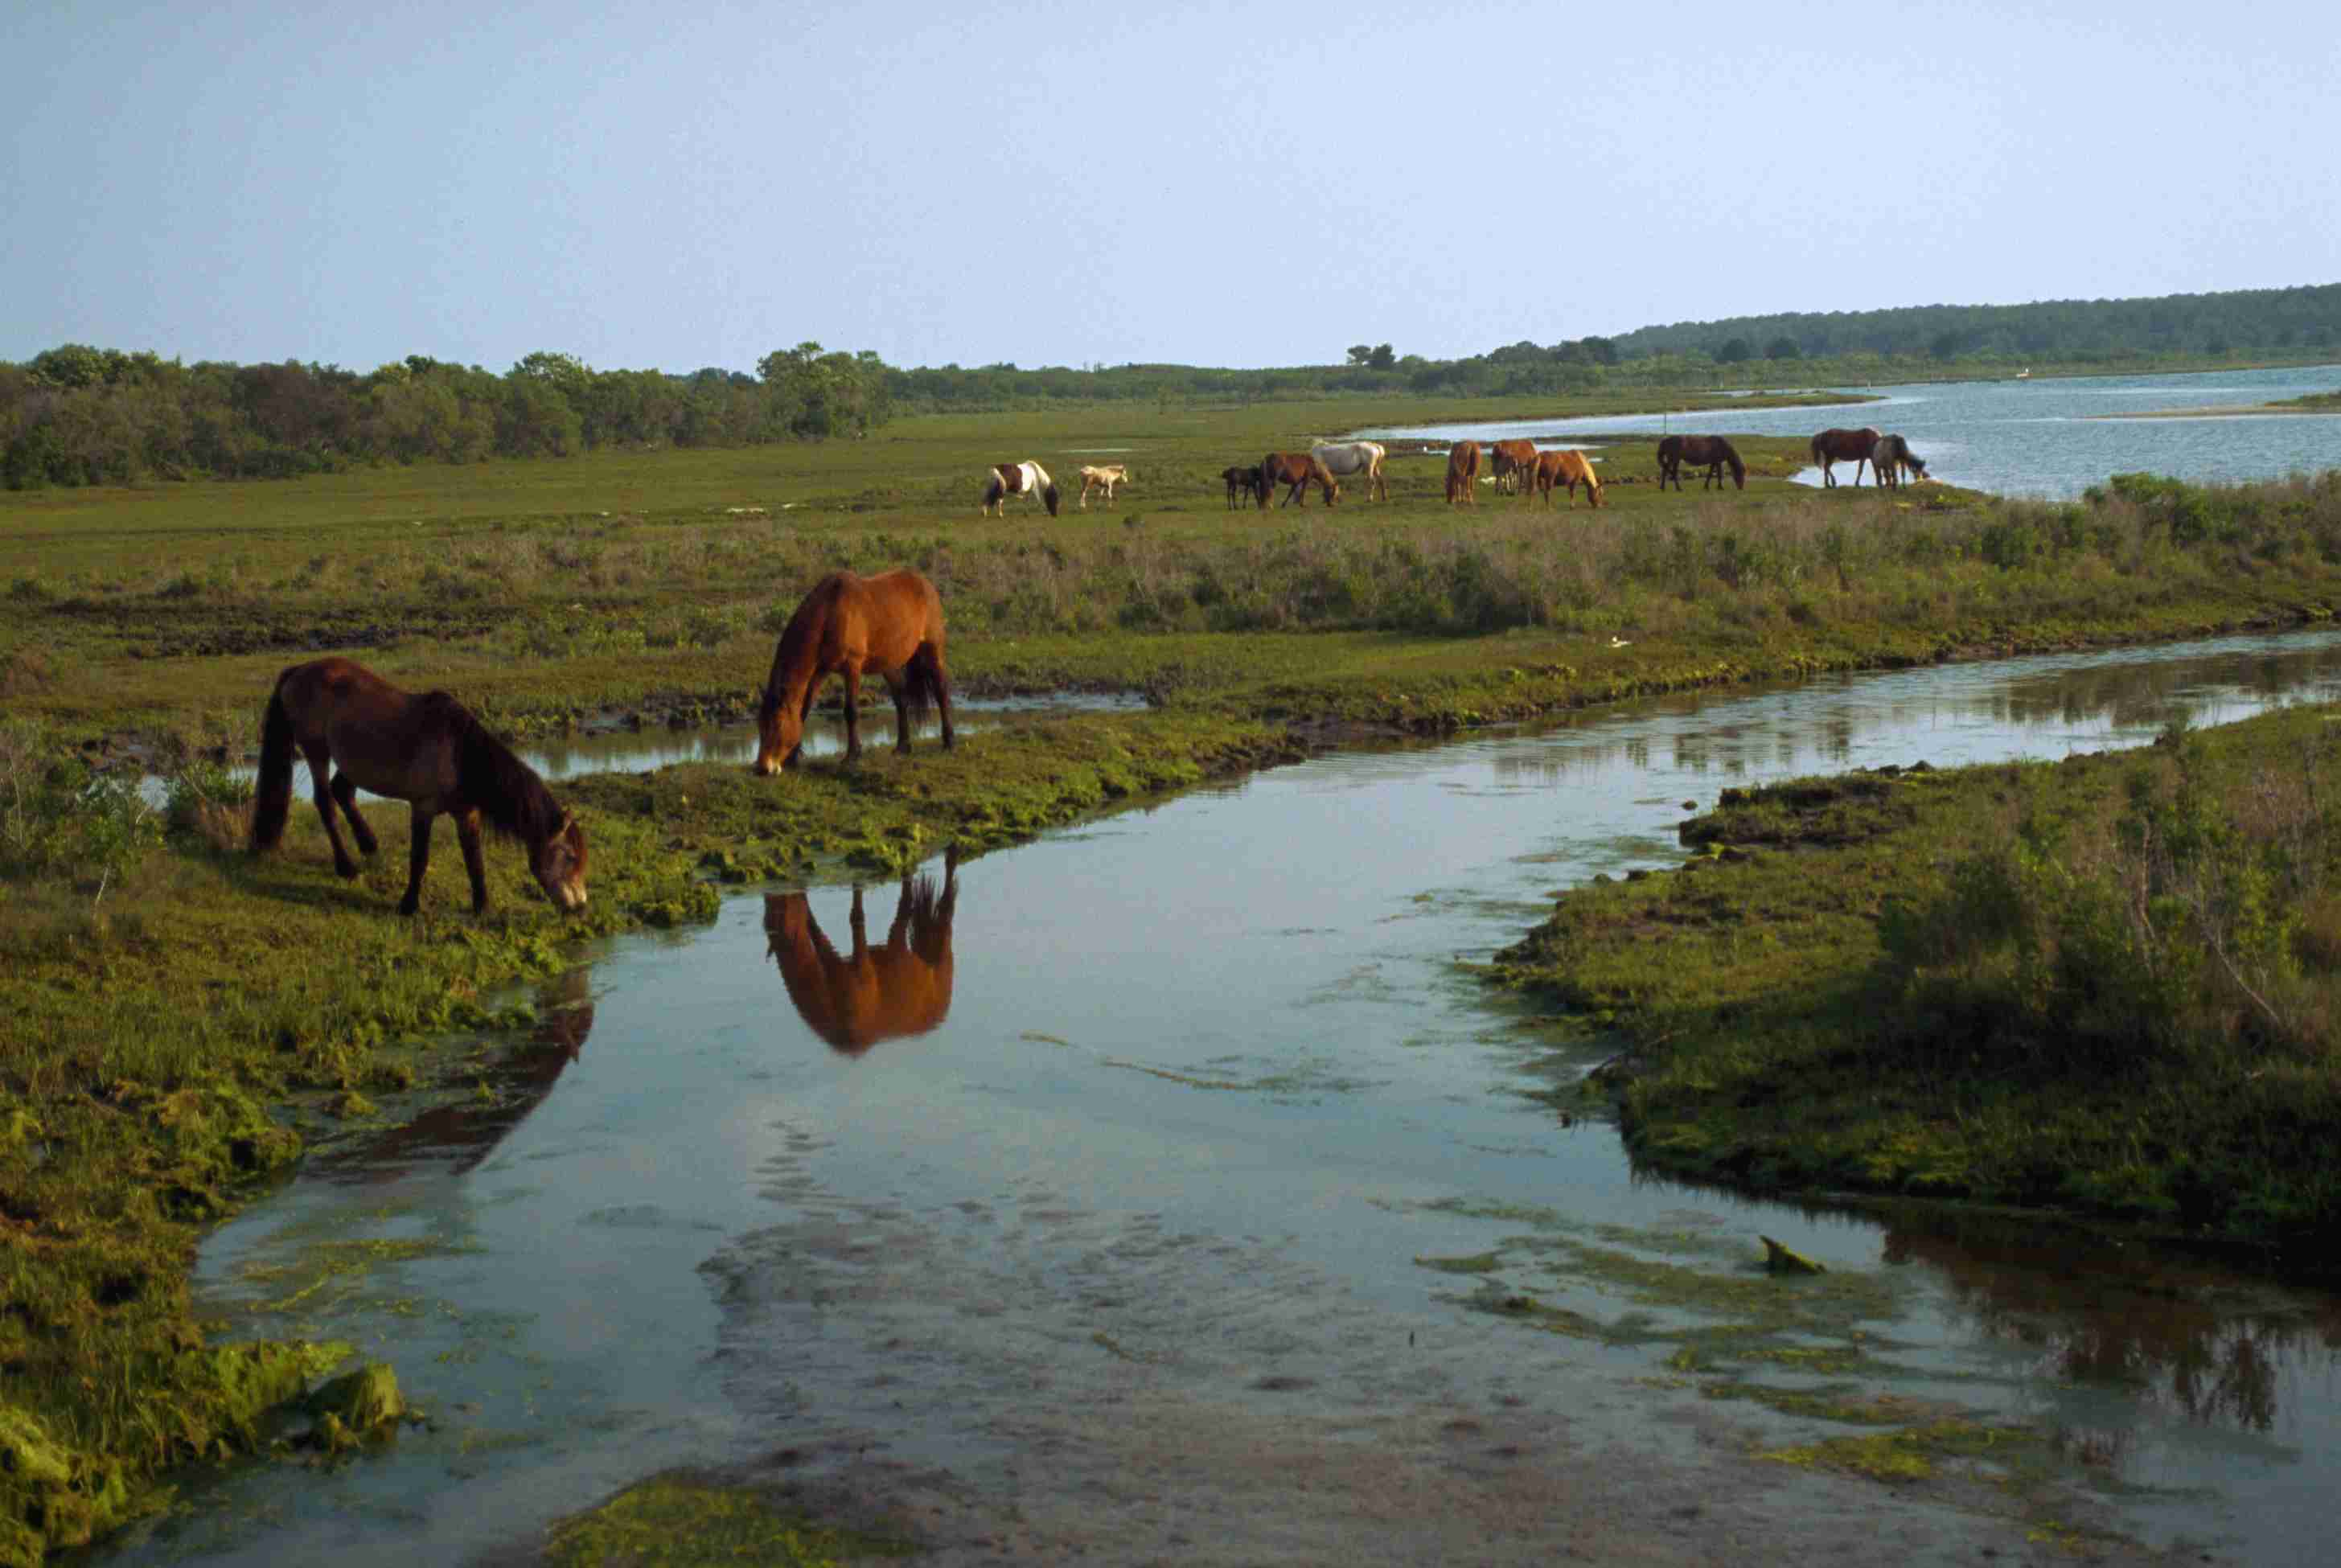 A herd of wild horses in a saltwater marsh environment